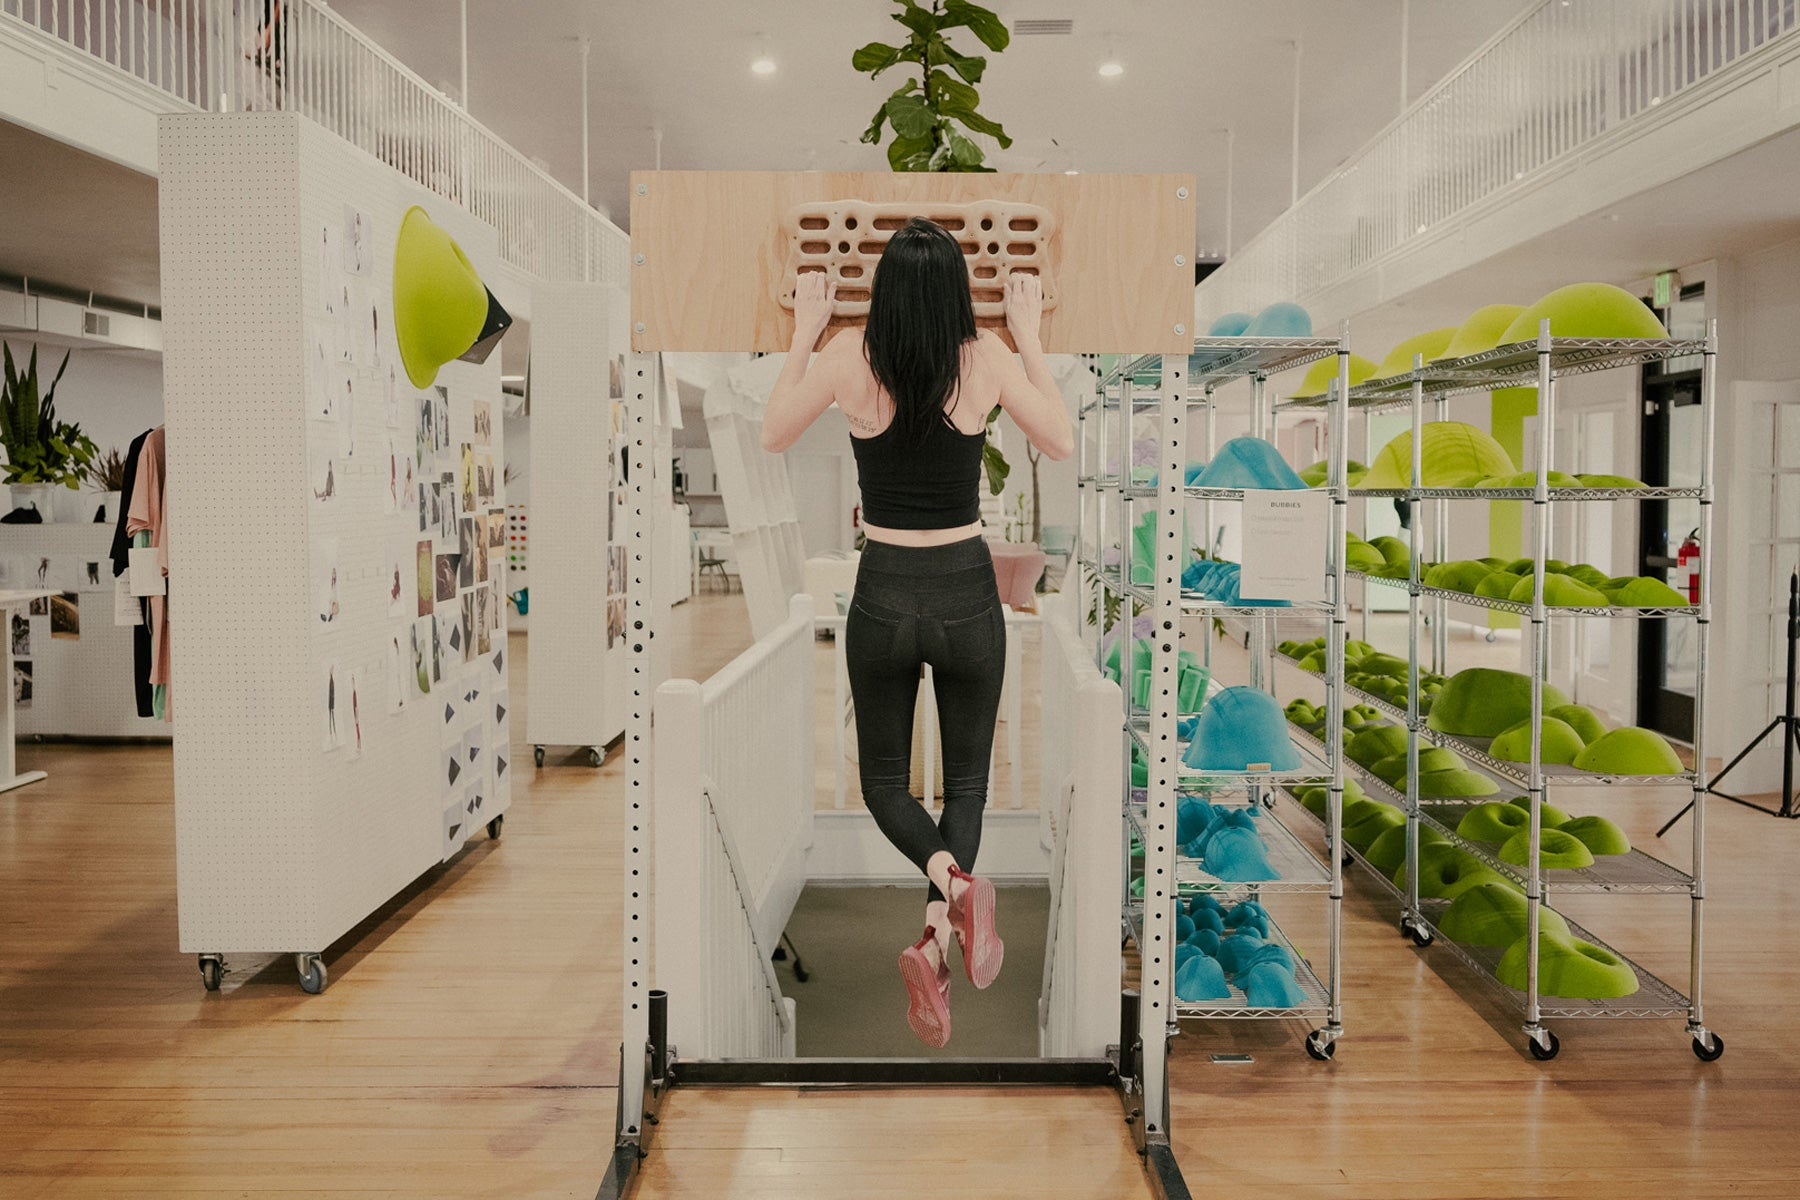 a woman trains on the so ill wood boost board inside of the so iLL headquarters